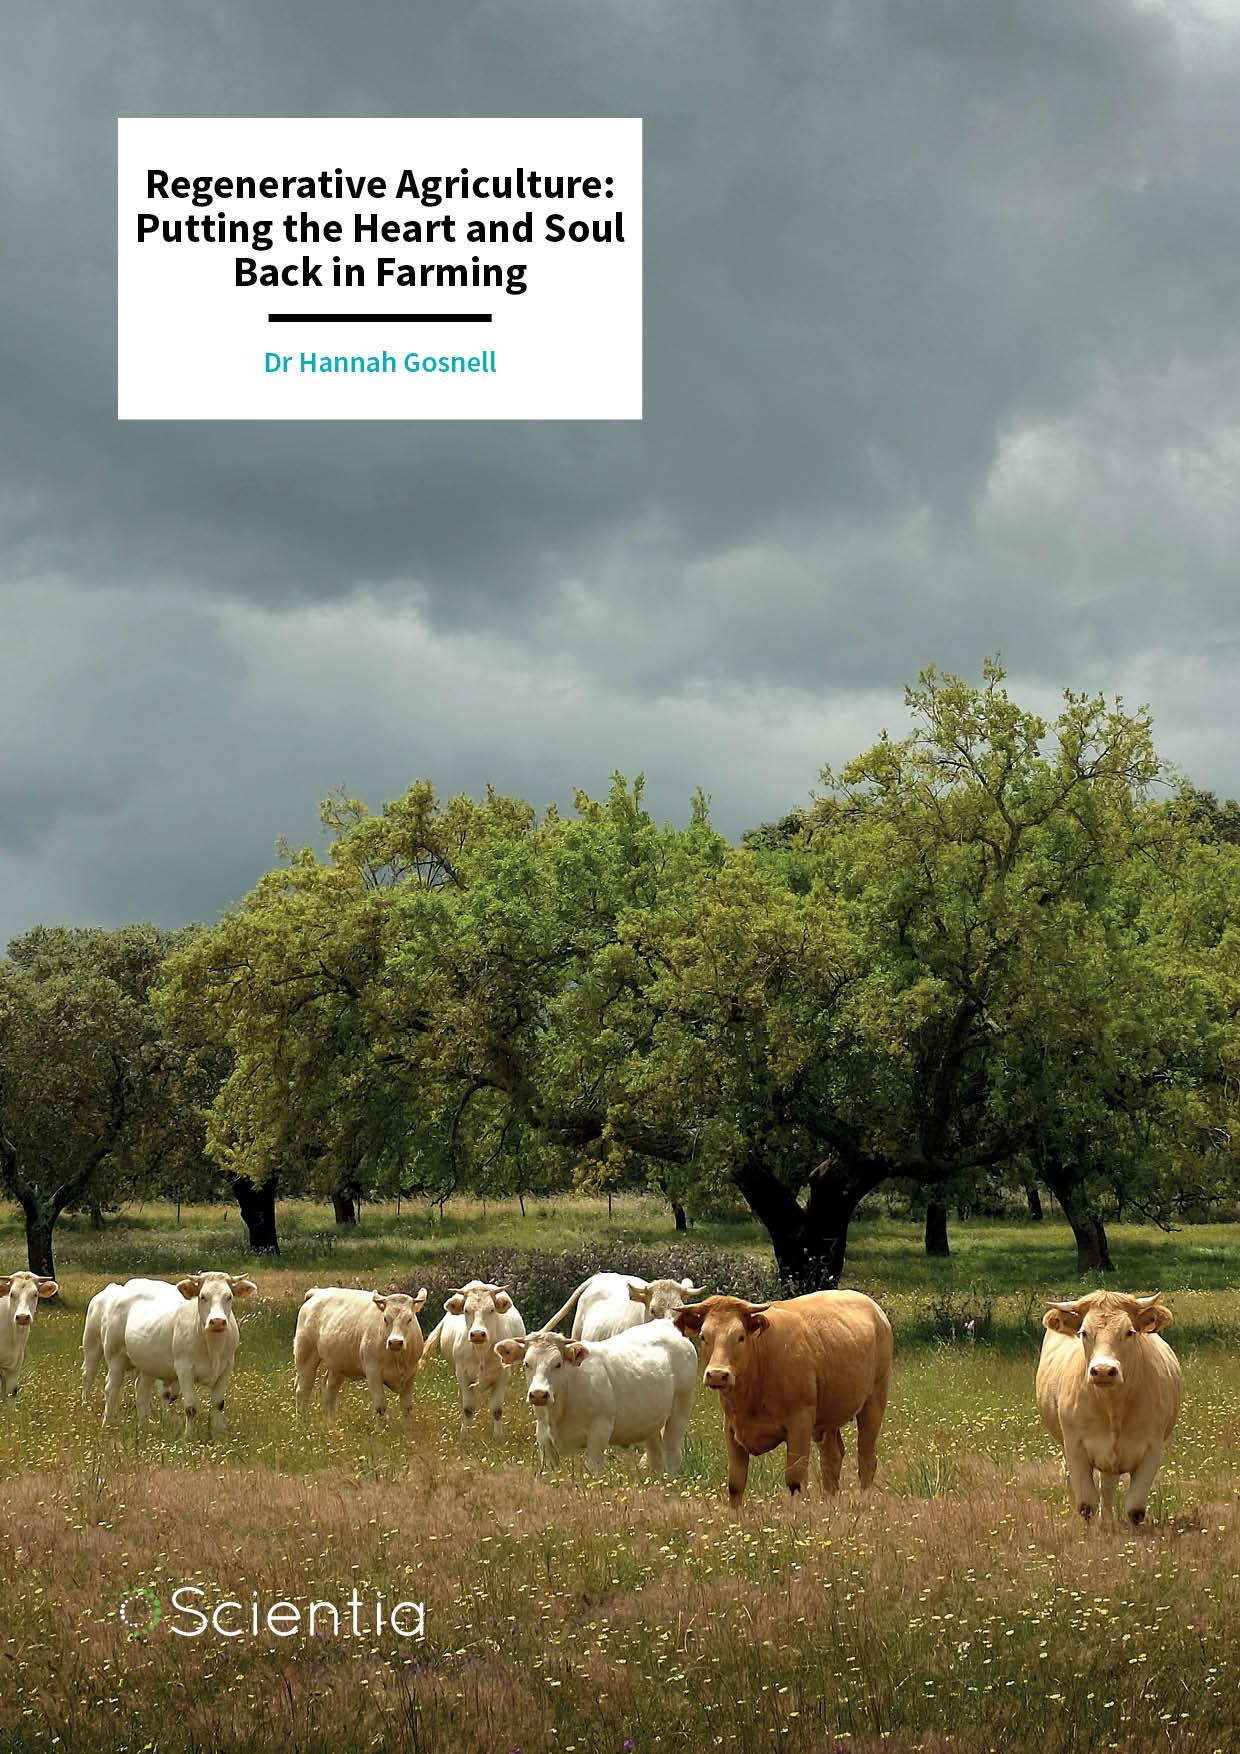 Dr Hannah Gosnell – Regenerative Agriculture: Putting the Heart and Soul Back in Farming